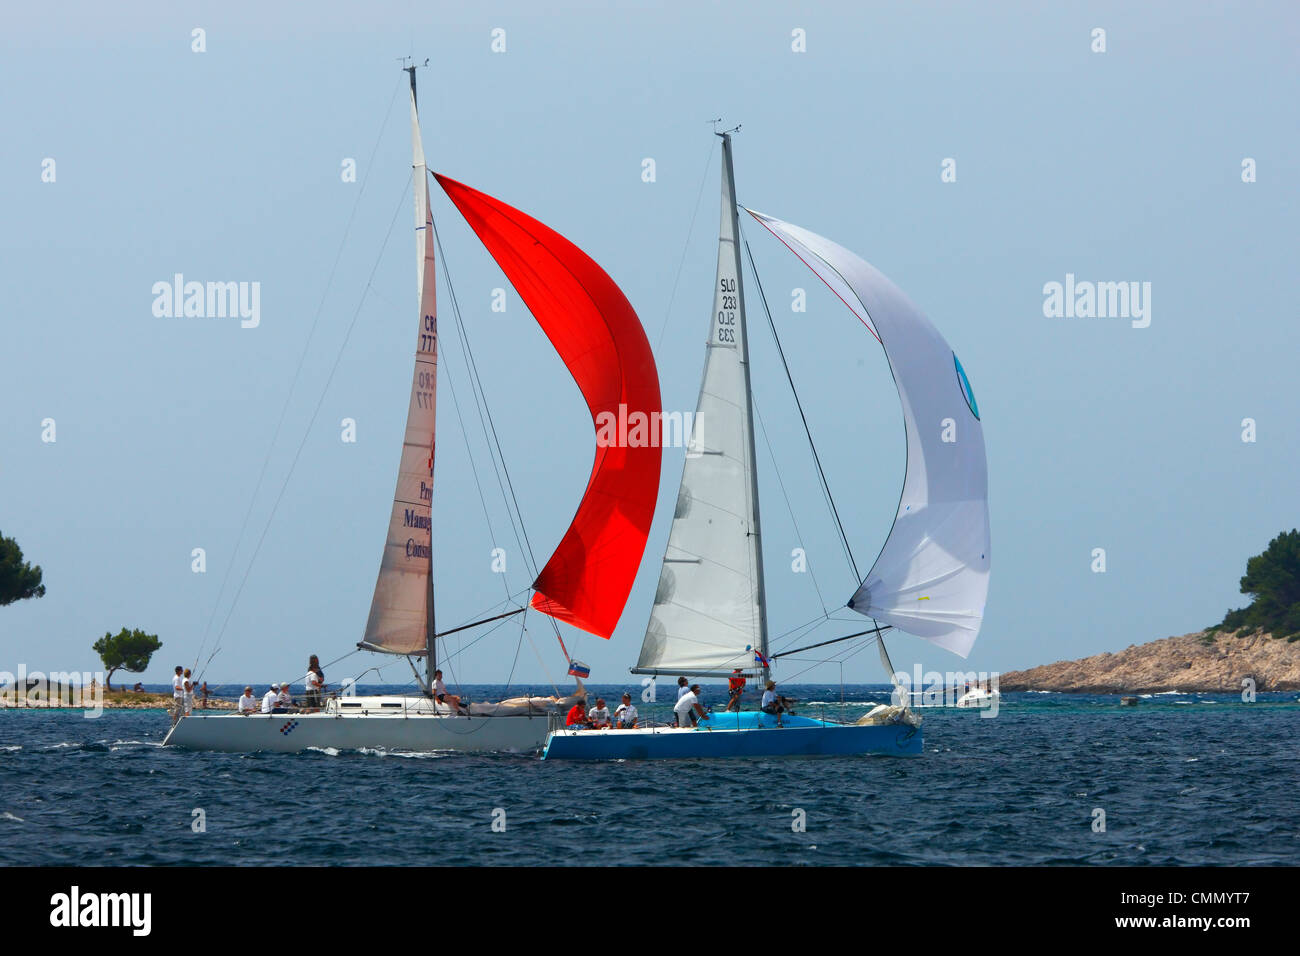 Sailing competition in Croatia - Stock Image